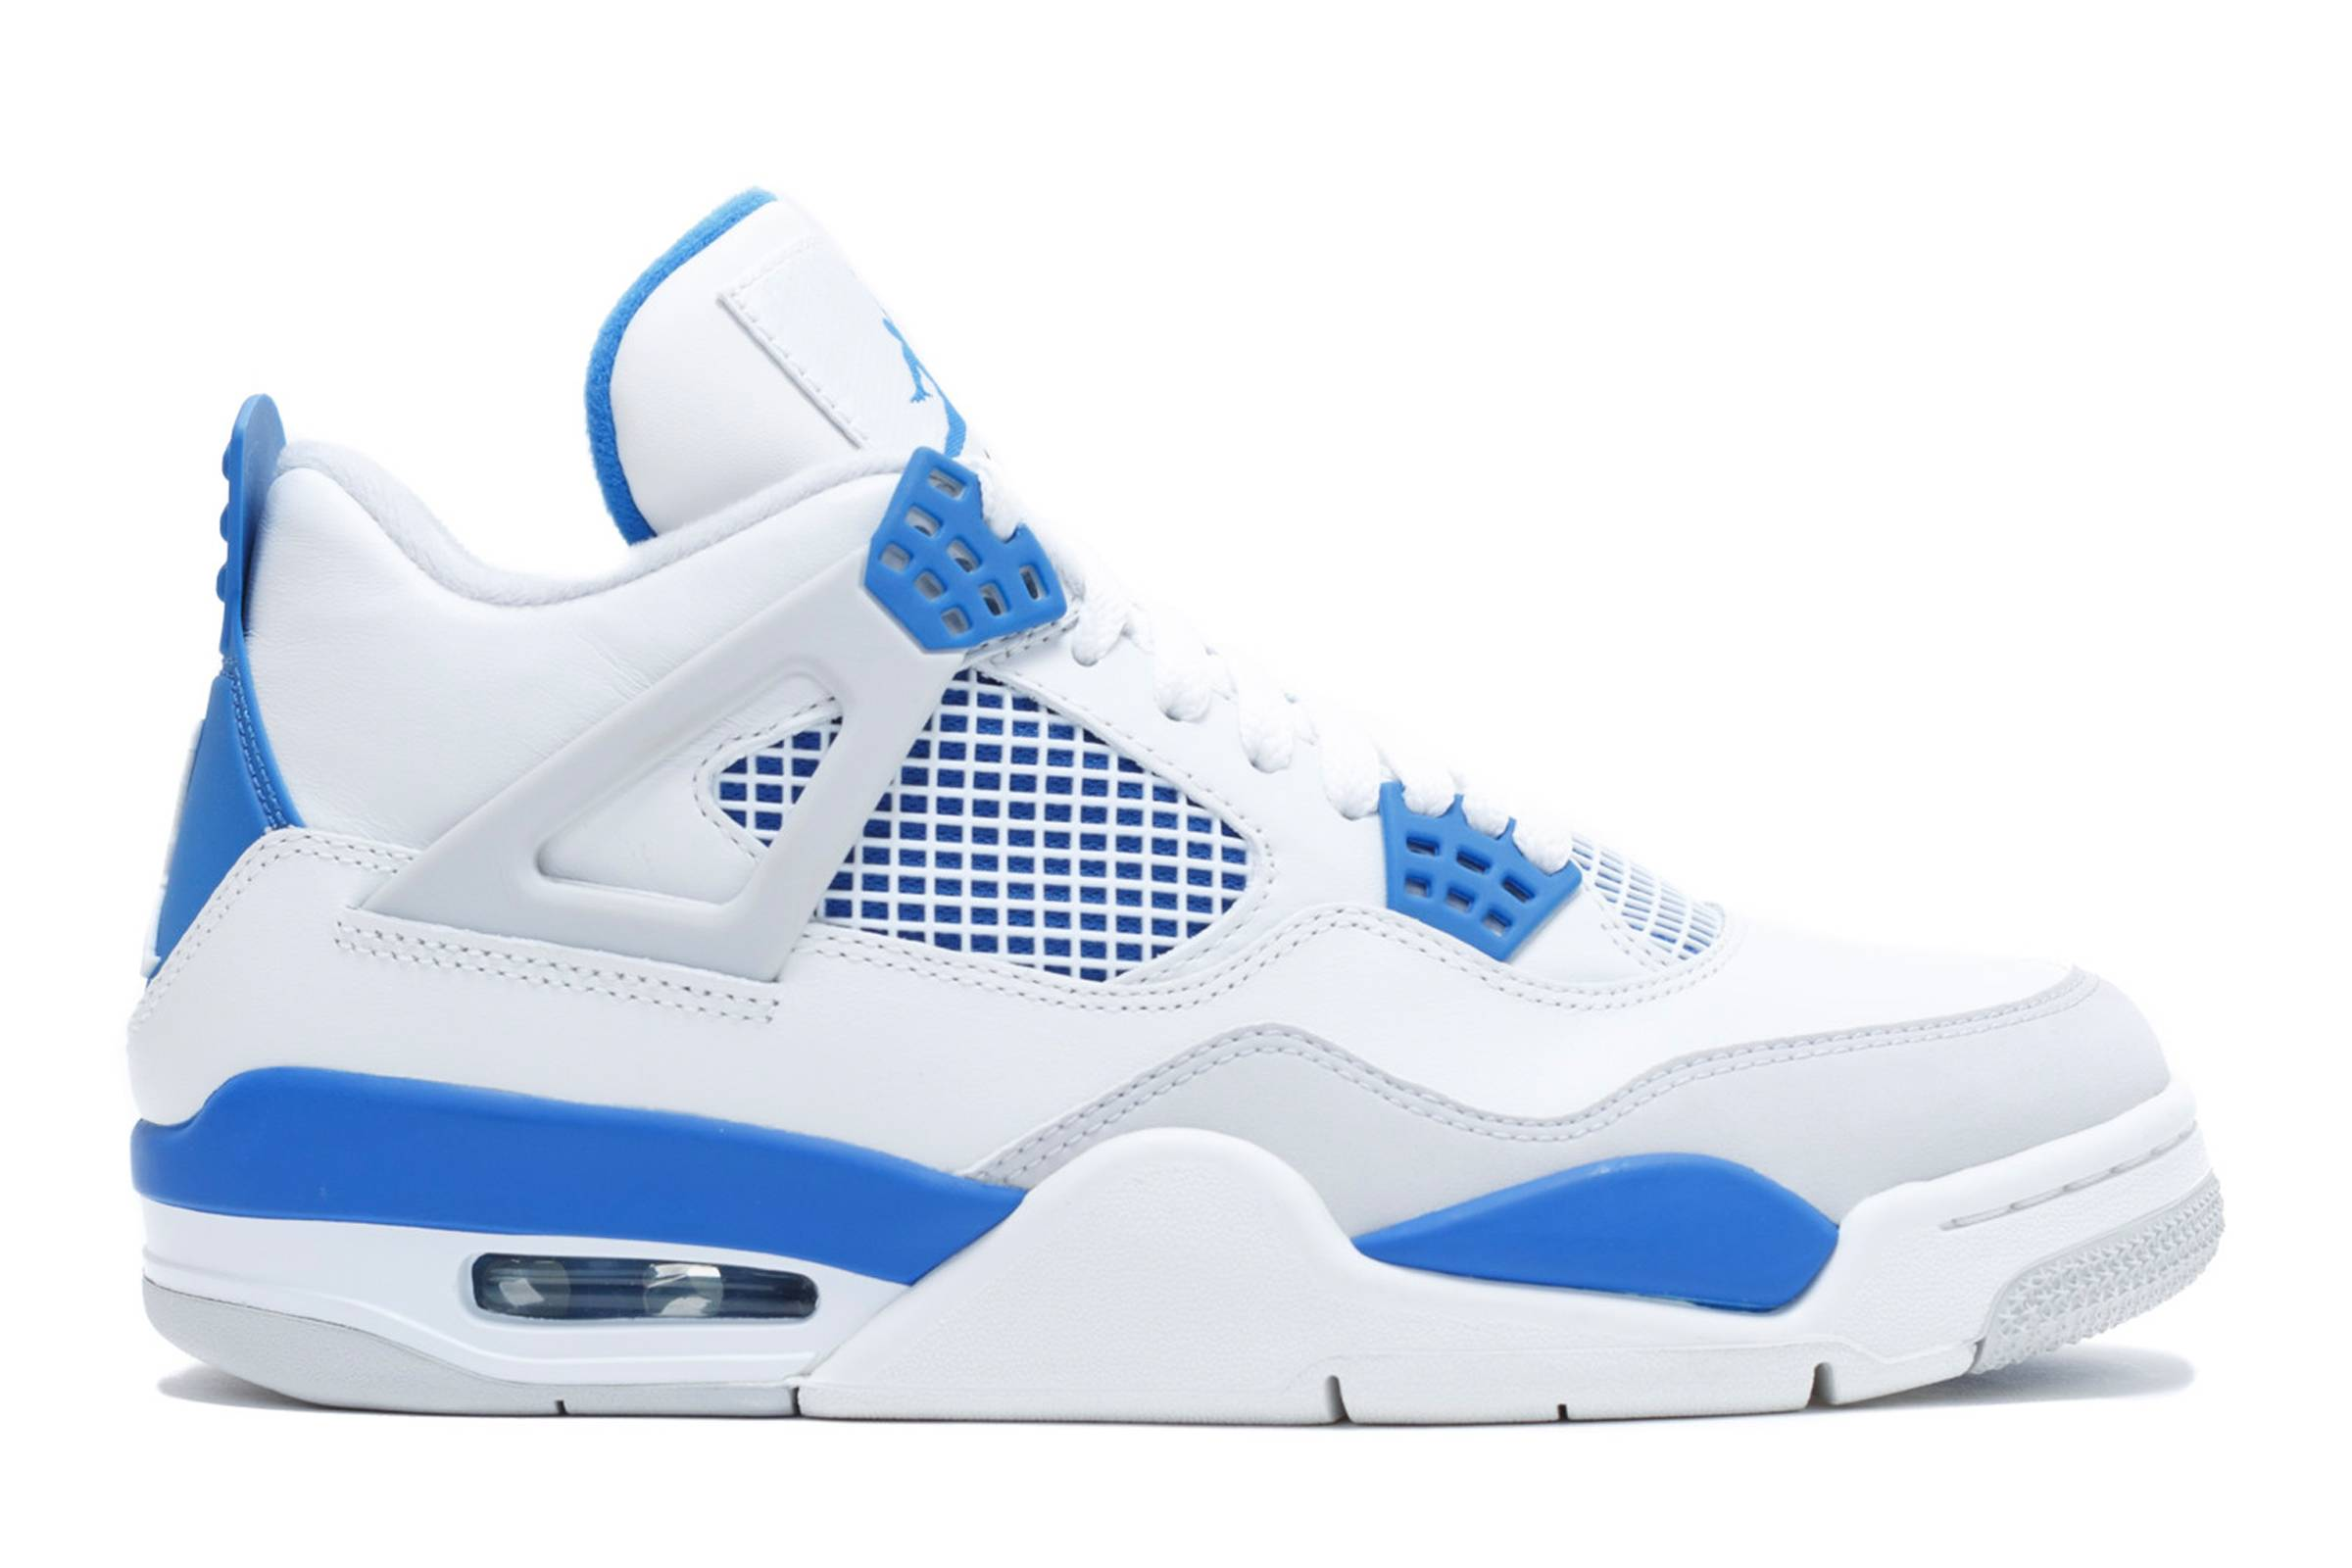 best service 14b5c 519bb Buggin' Out: Iconic Air Jordan IV Releases | Grailed